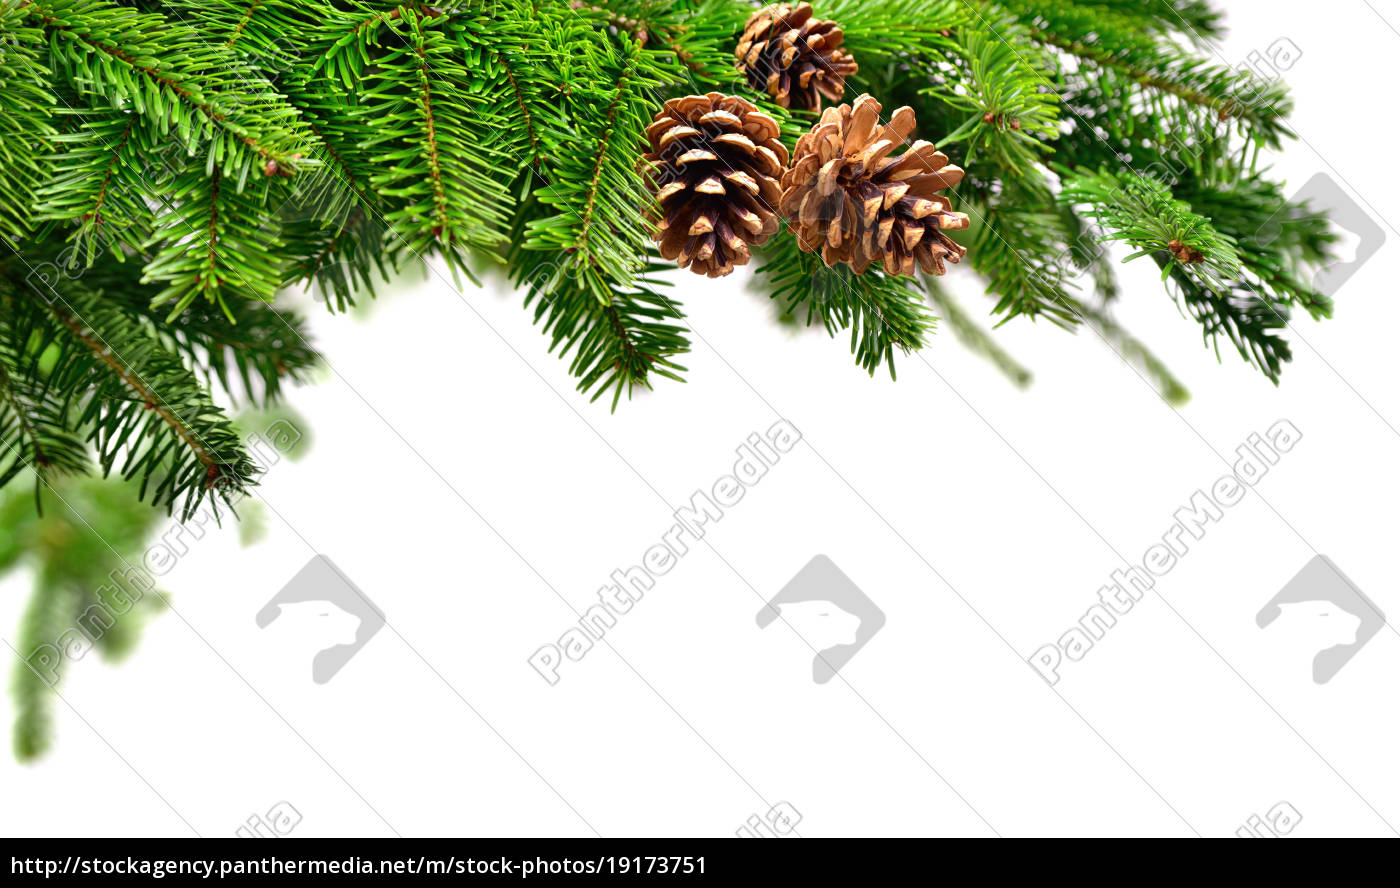 fresh, fir, branches, with, pine, cones - 19173751